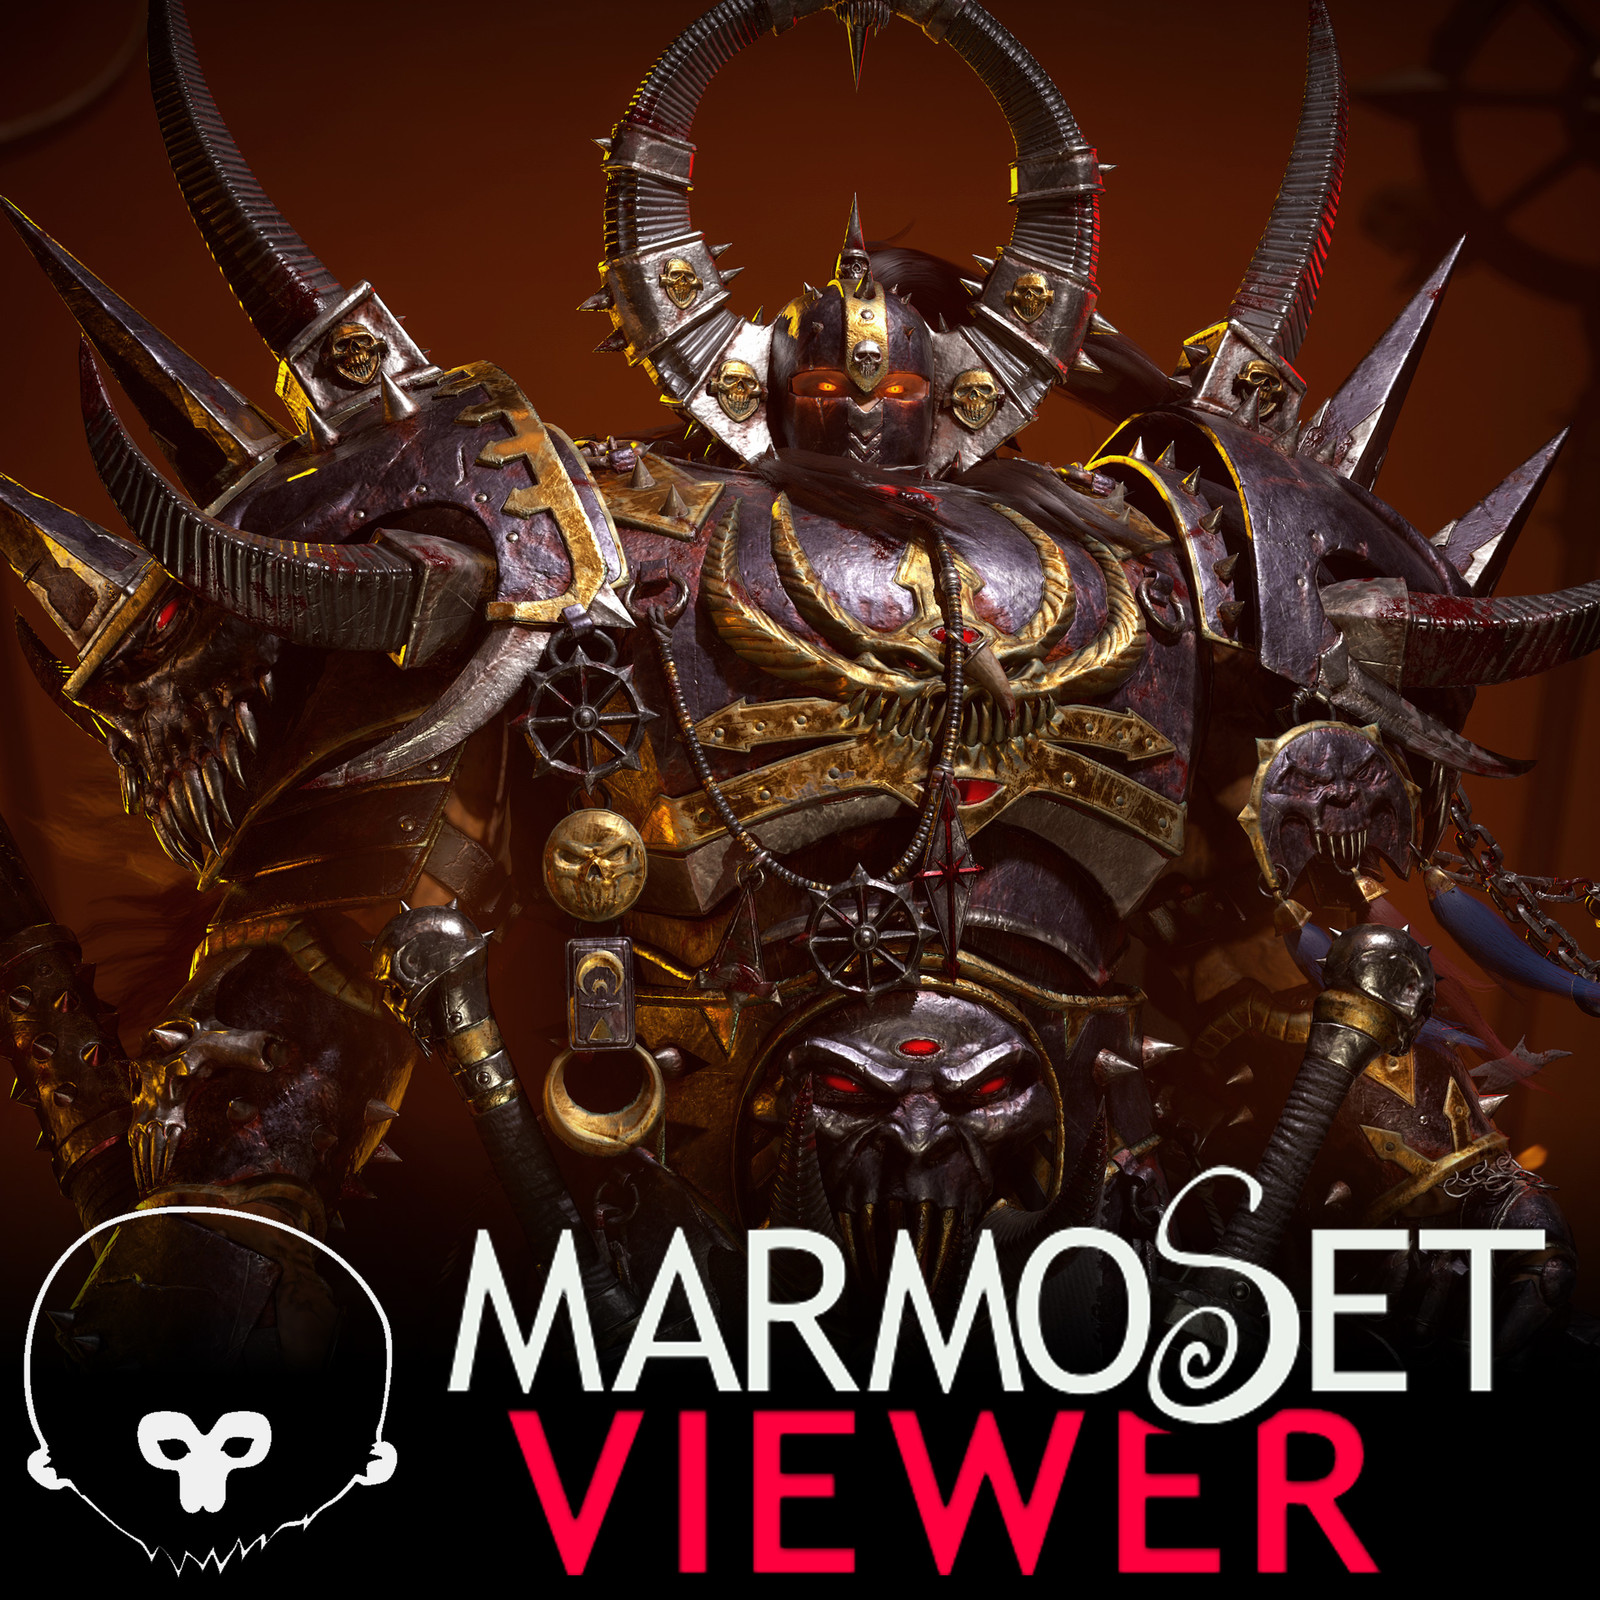 Engra Deathsword - Marmoset Viewer